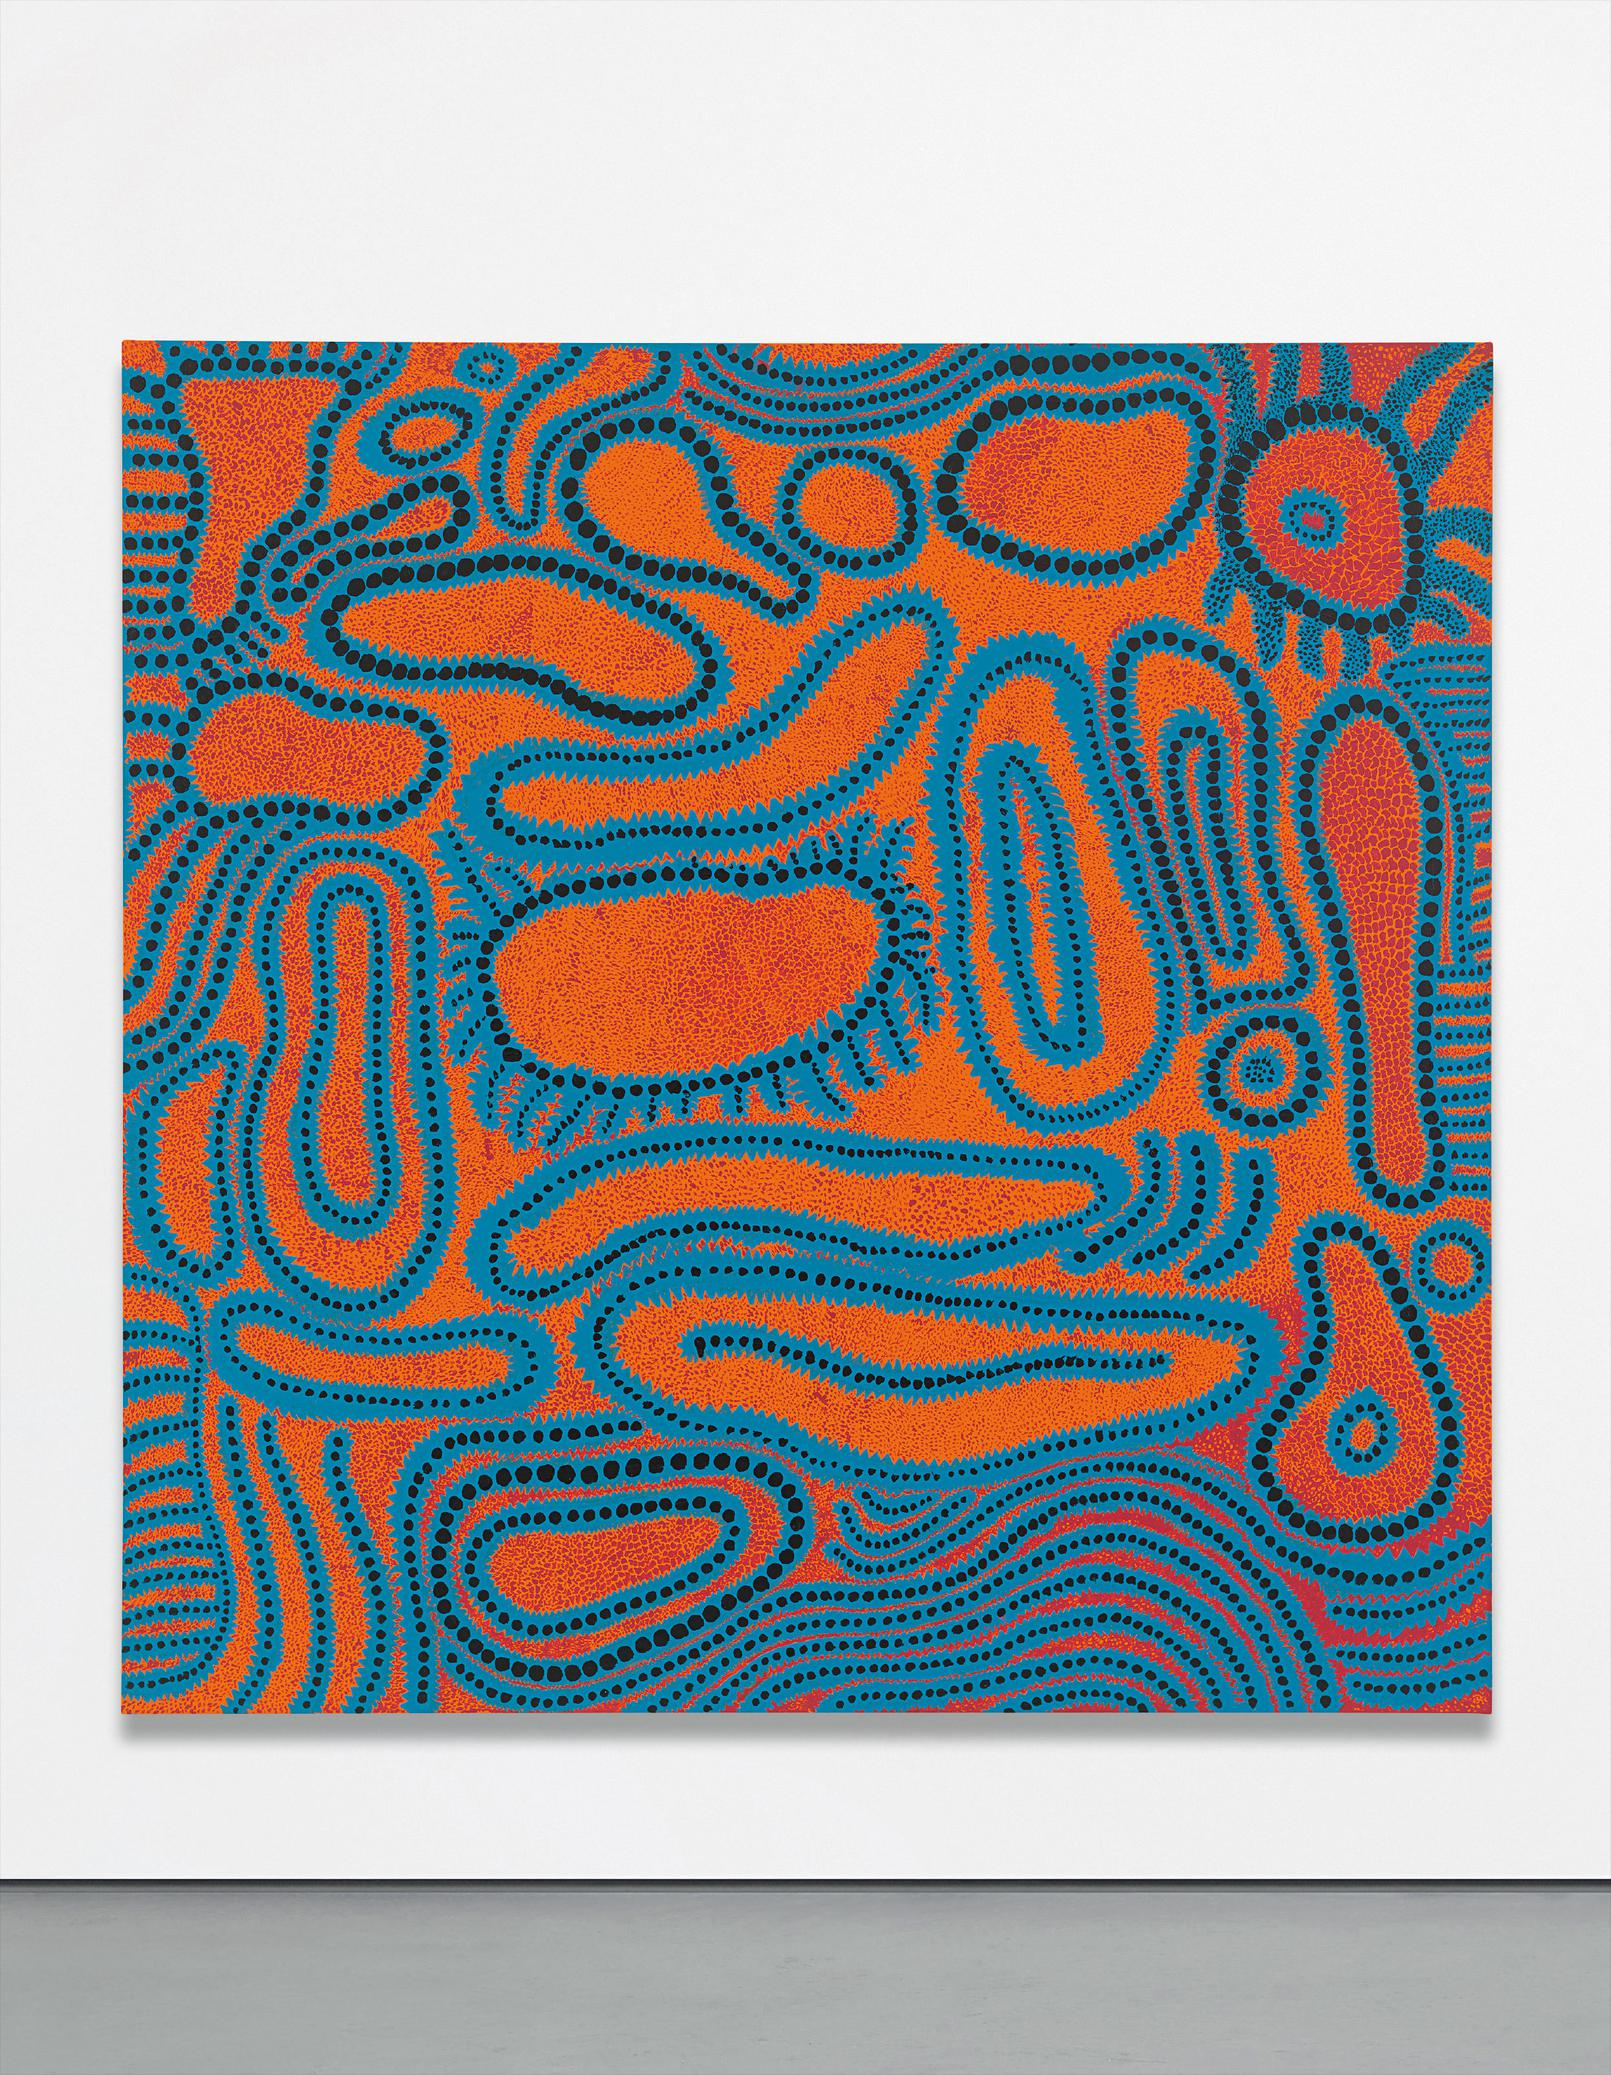 Yayoi Kusama-Far End Of Disappointment-2015